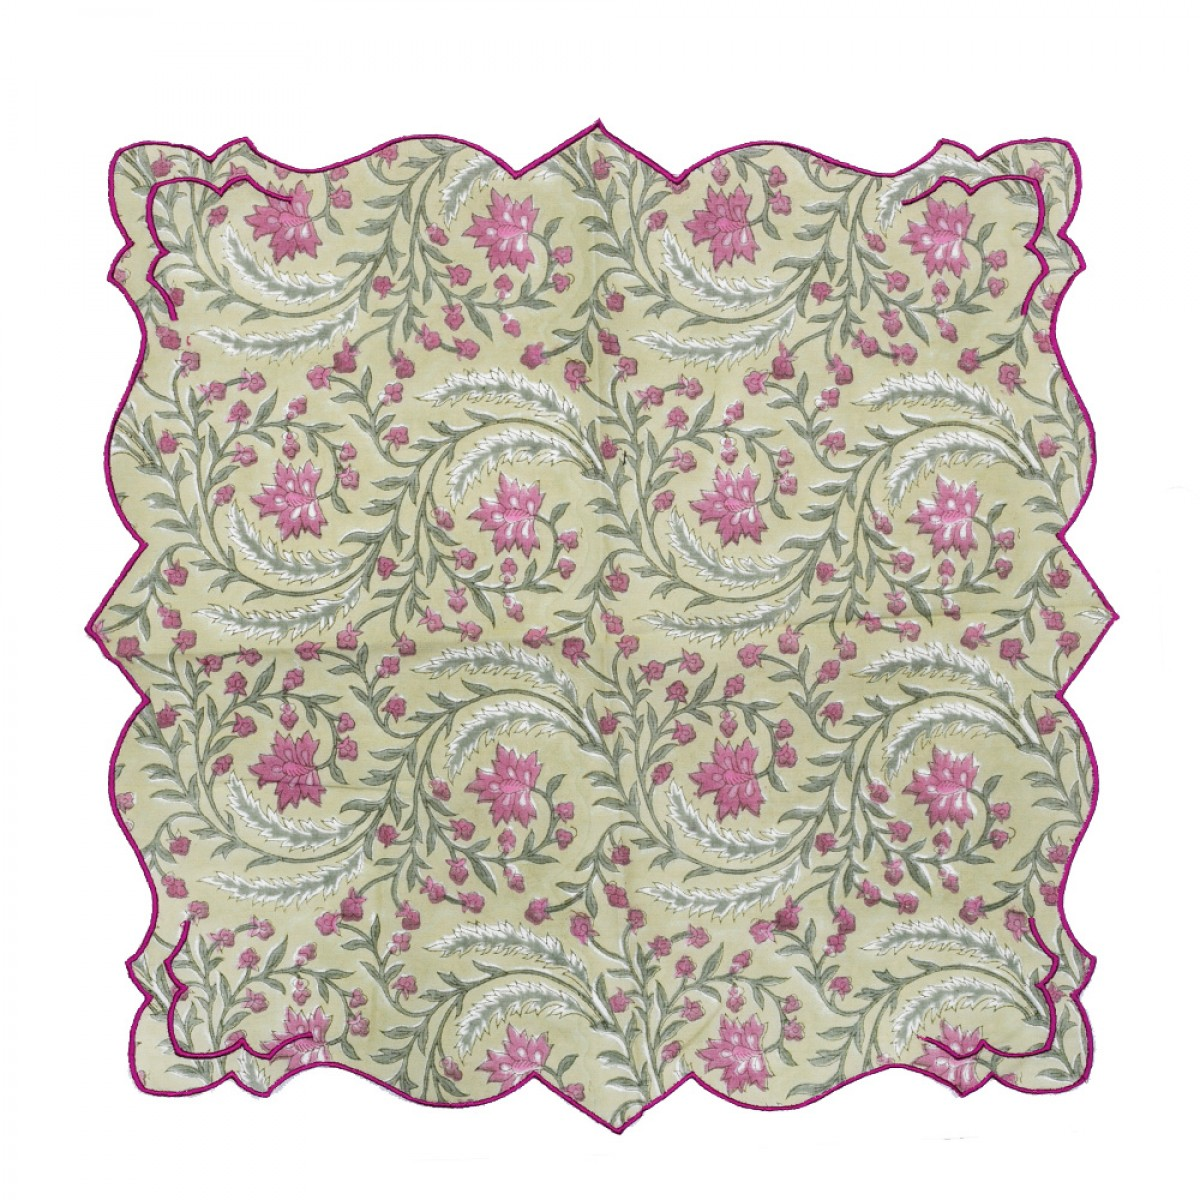 Cotton Scallop Embroidered Printed Napkin - Sage Green (Set of 6)